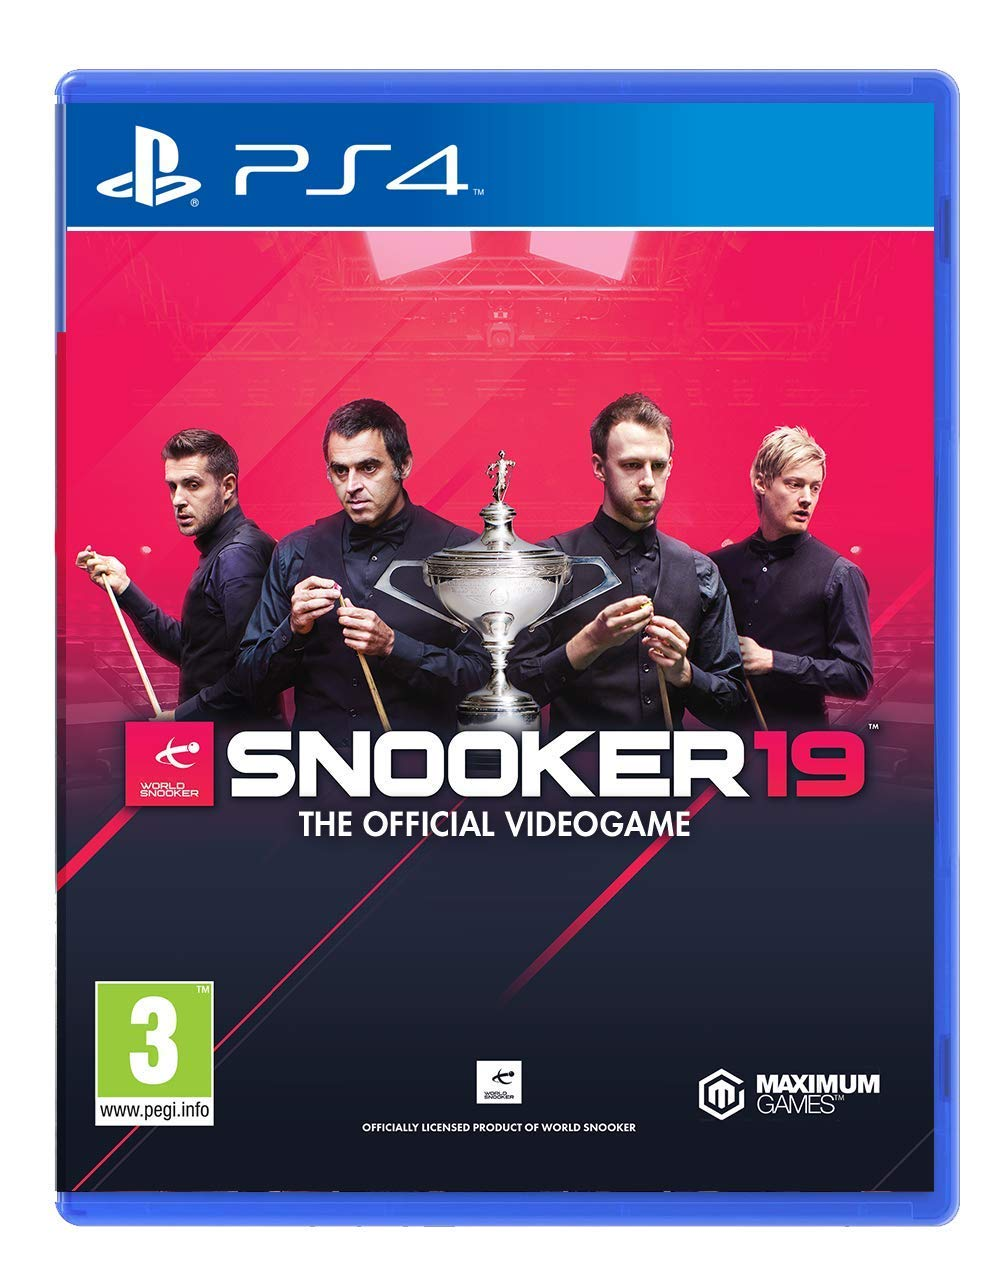 PS4 Snooker 19 The Official Video Game